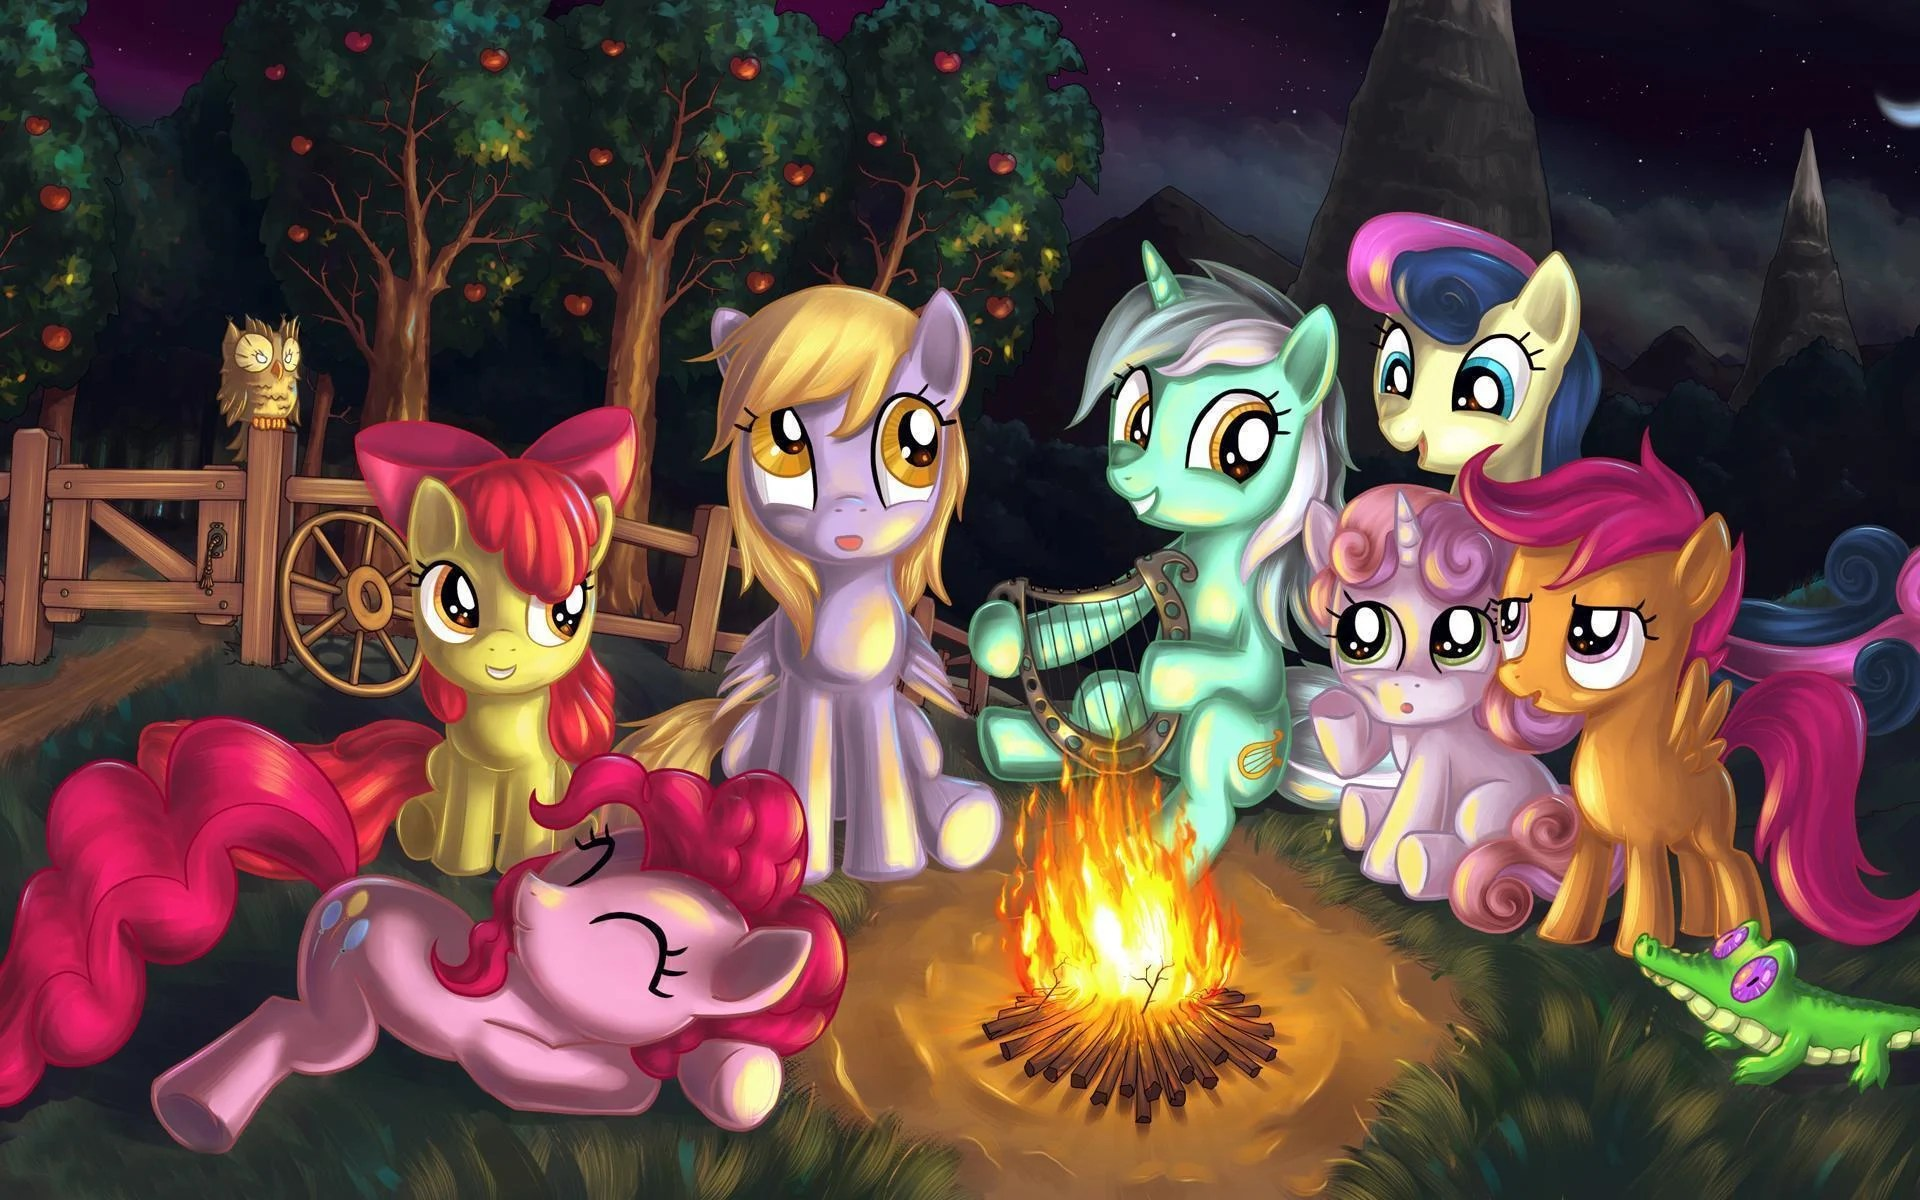 Anime Girl Angle Wallpaper 1366x768 My Little Pony Hd Wallpapers Wallpaper Cave